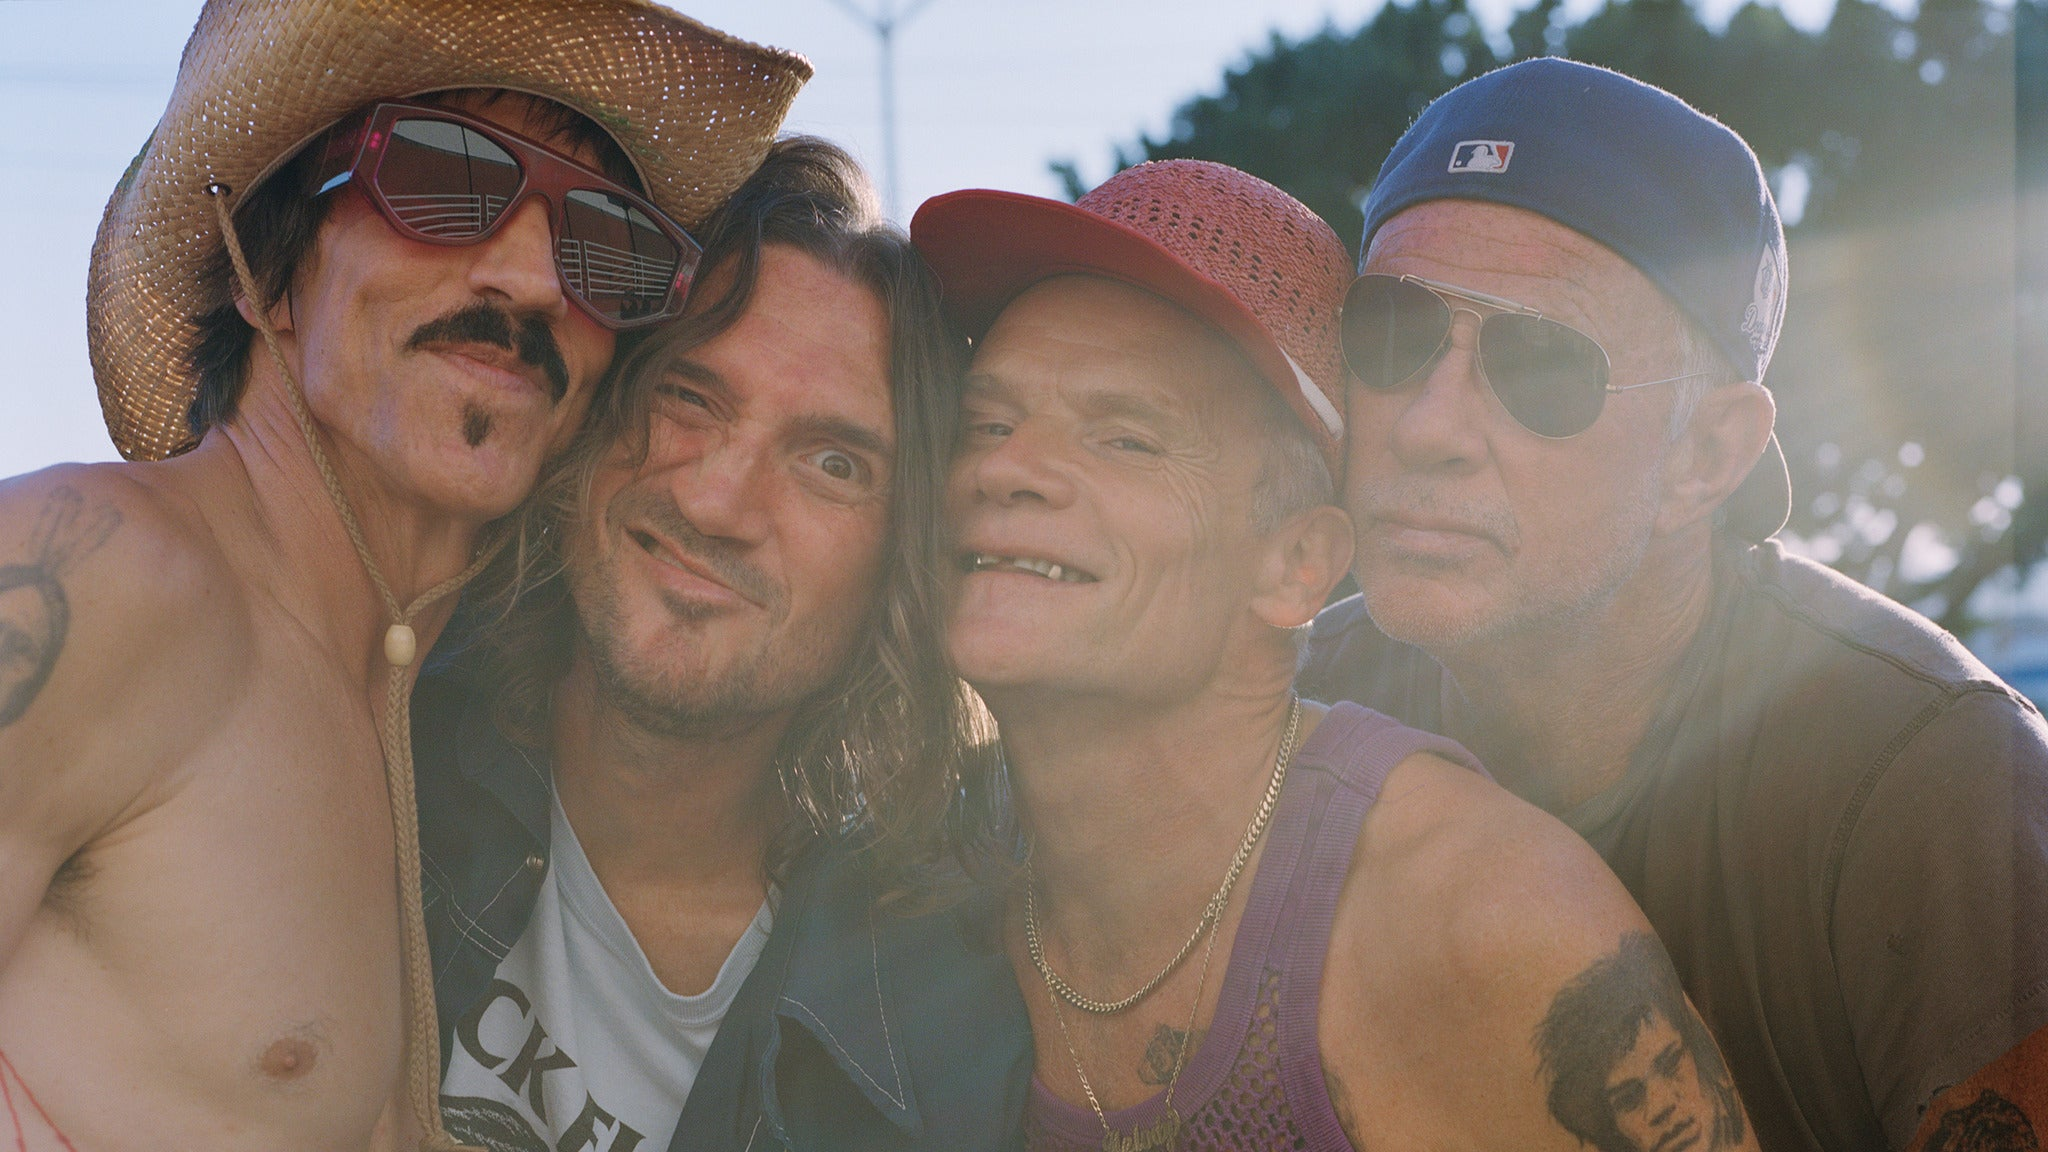 Red Hot Chili Peppers 2022 World Tour pre-sale password